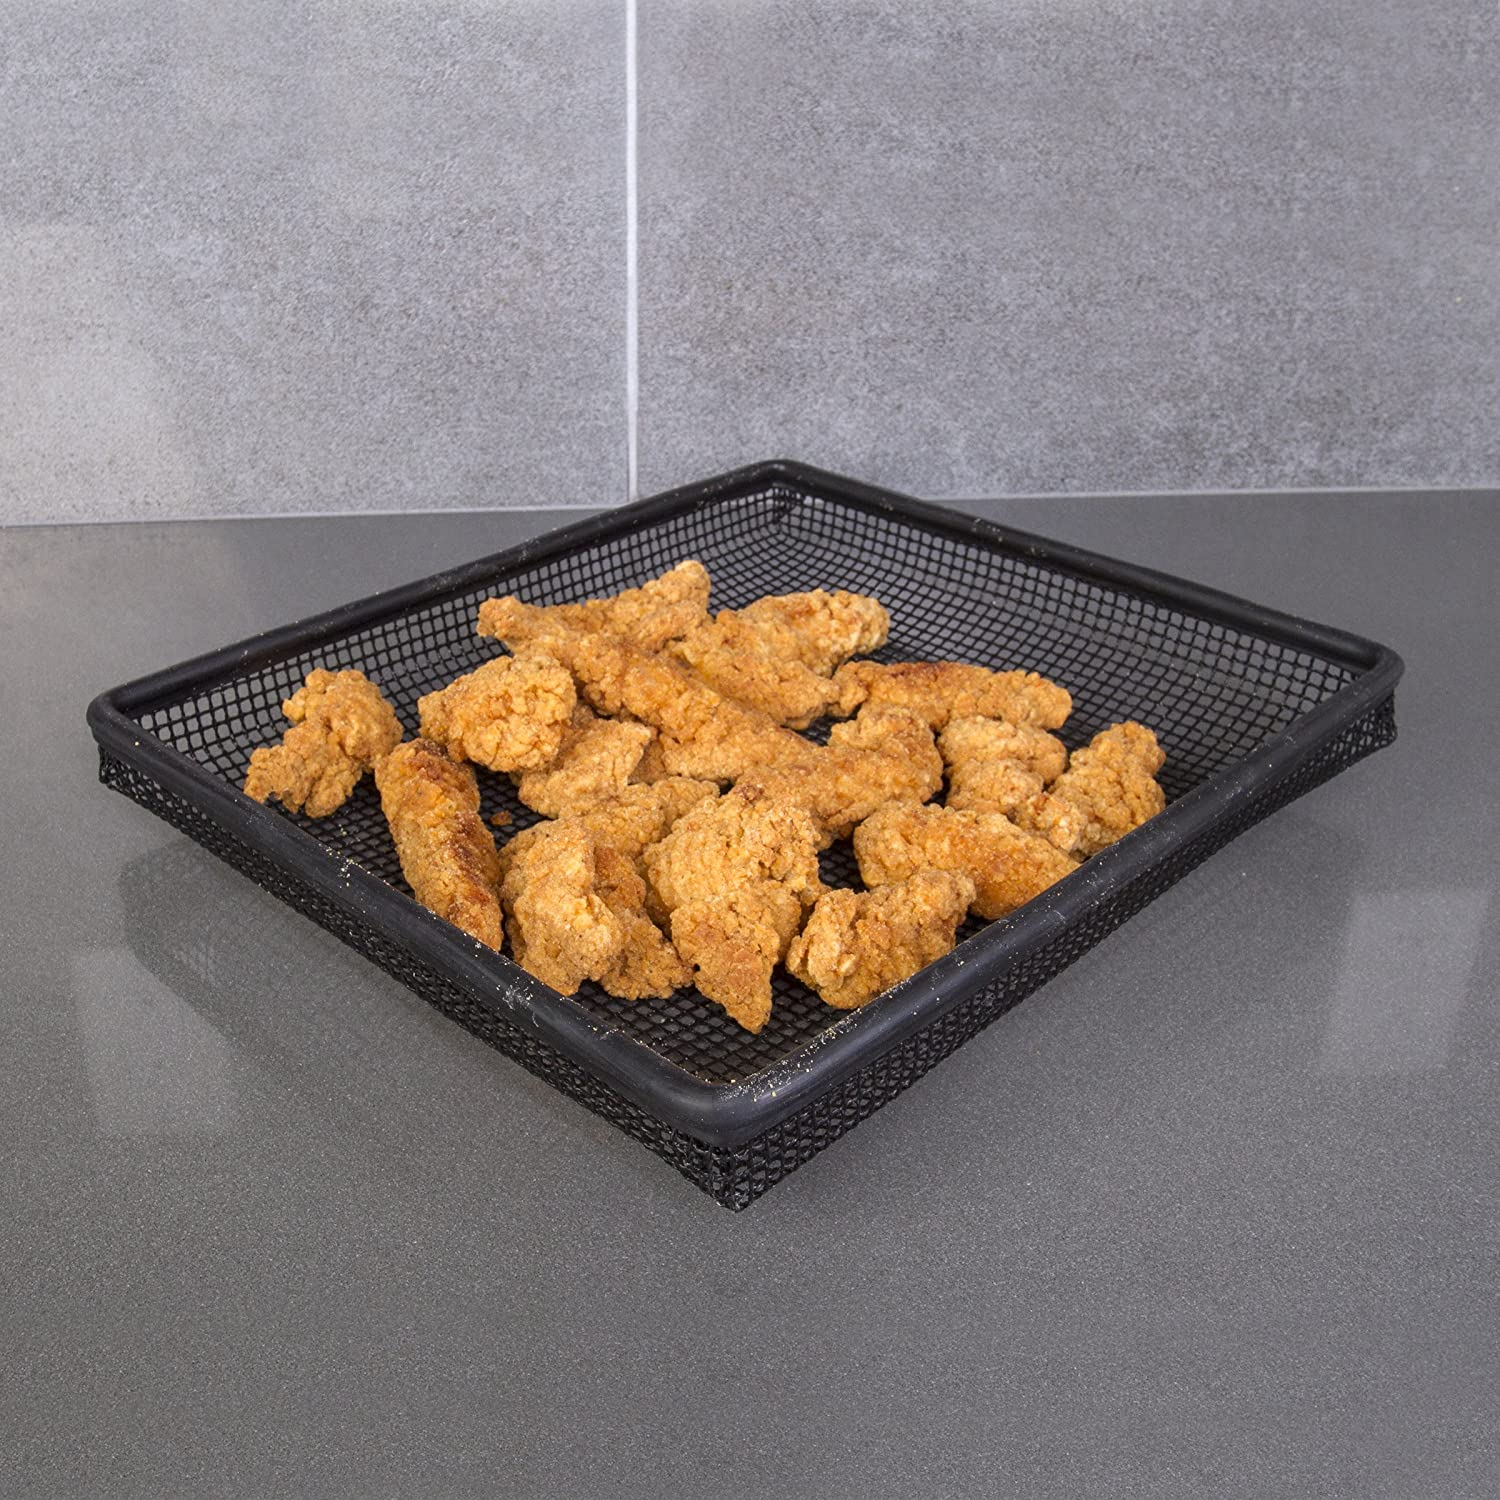 Dishwasher and Freezer Safe SC Chang KH-133 Tater Tots and More Without Butter or Oil Home Oven Crisper Trays Kitchen Chicken Tenders Perfectly Crisp Fries Set of 2 Non-stick Mesh Crisper Trays